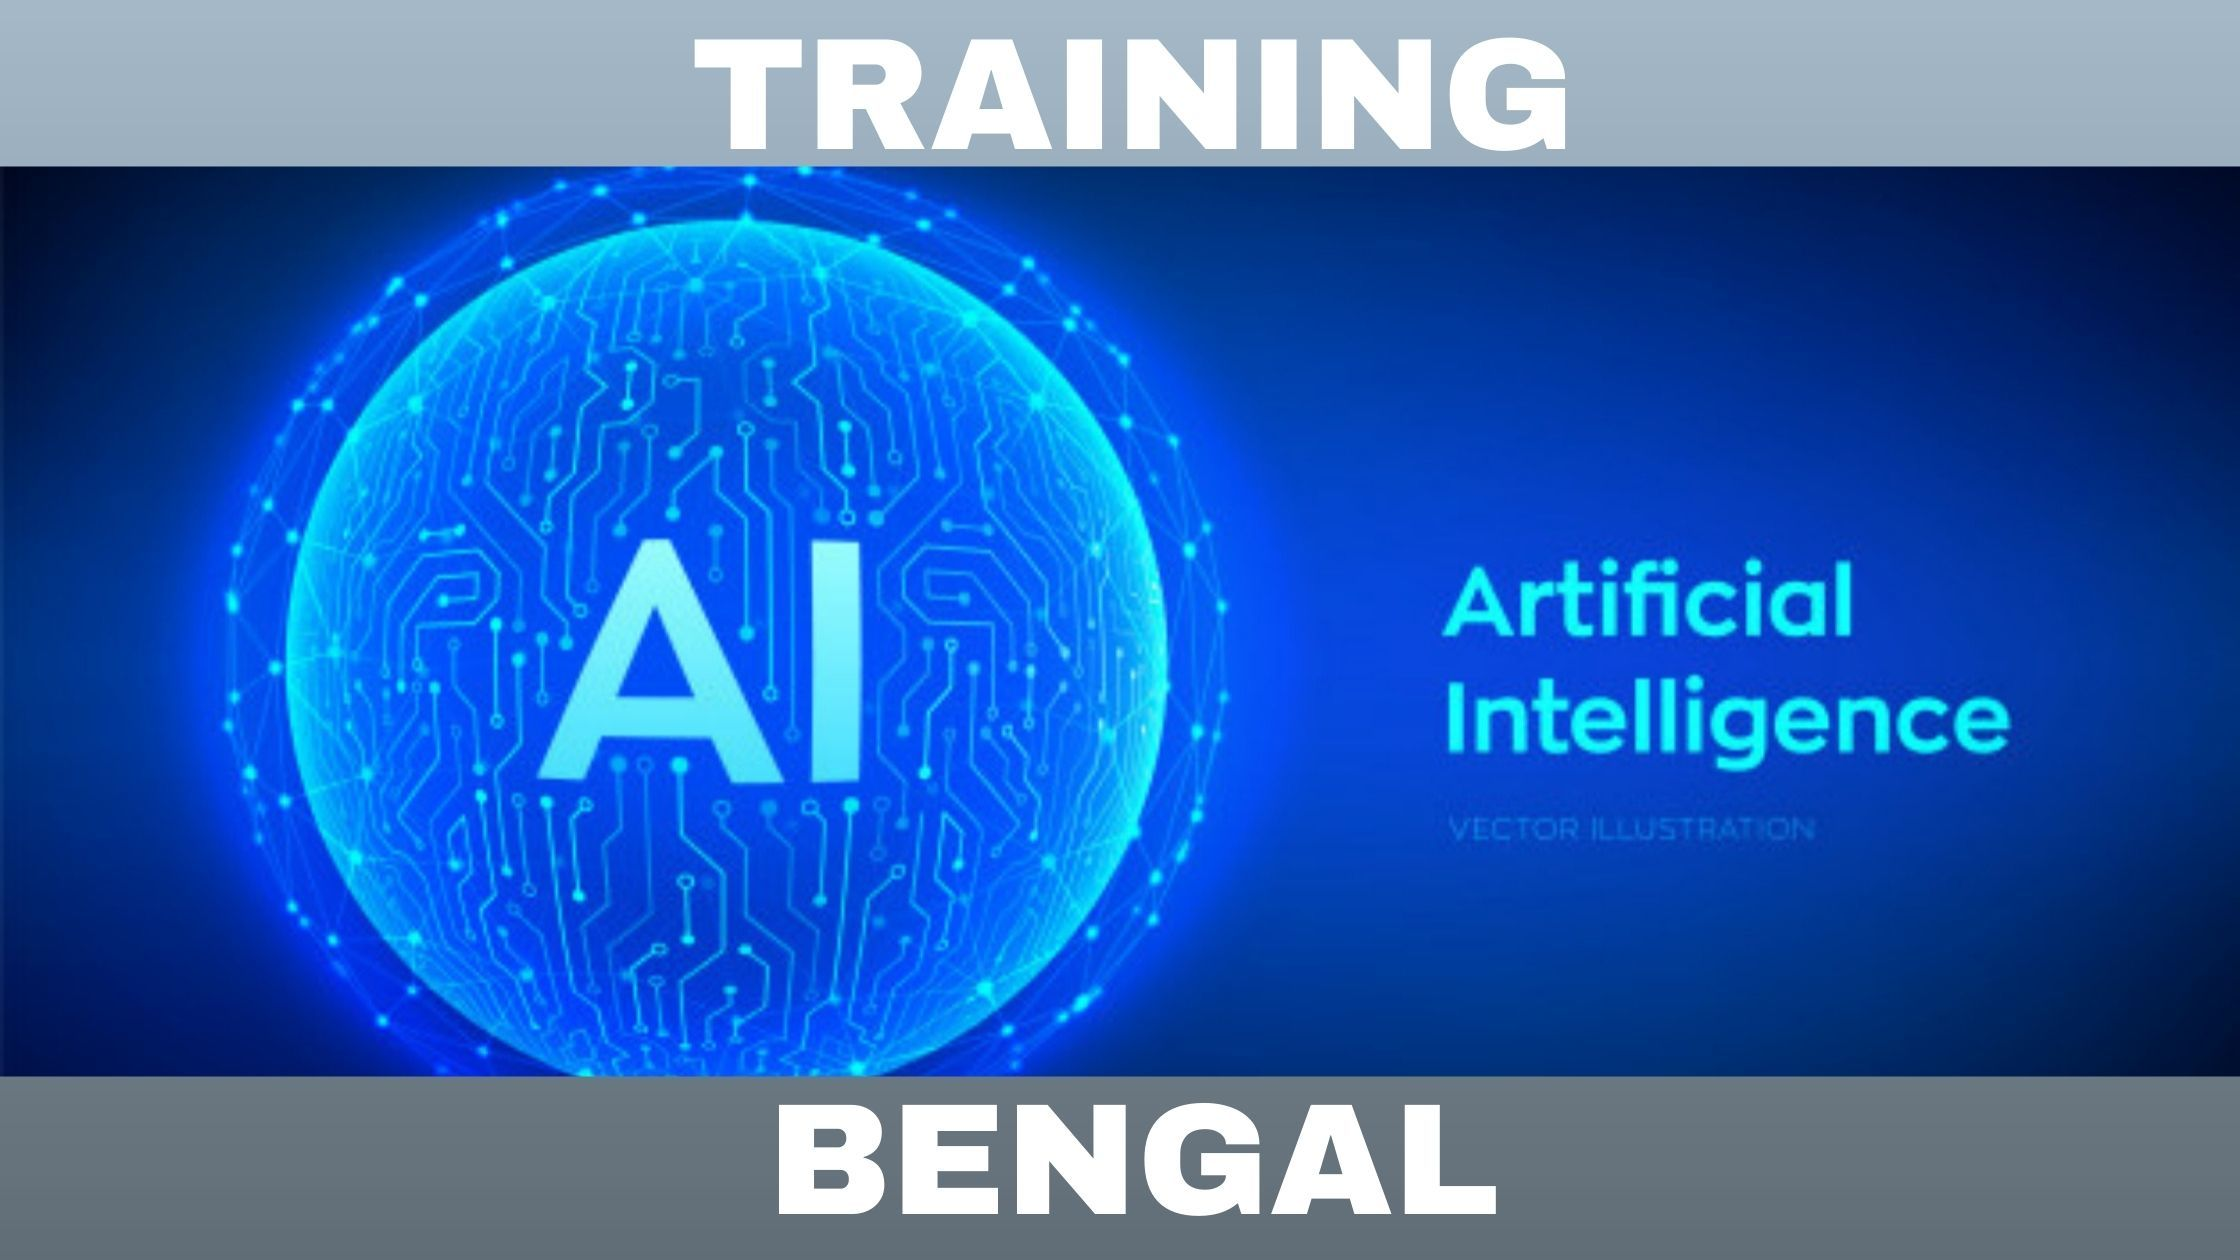 artificial_intelligence_in_bengal-background.jpeg